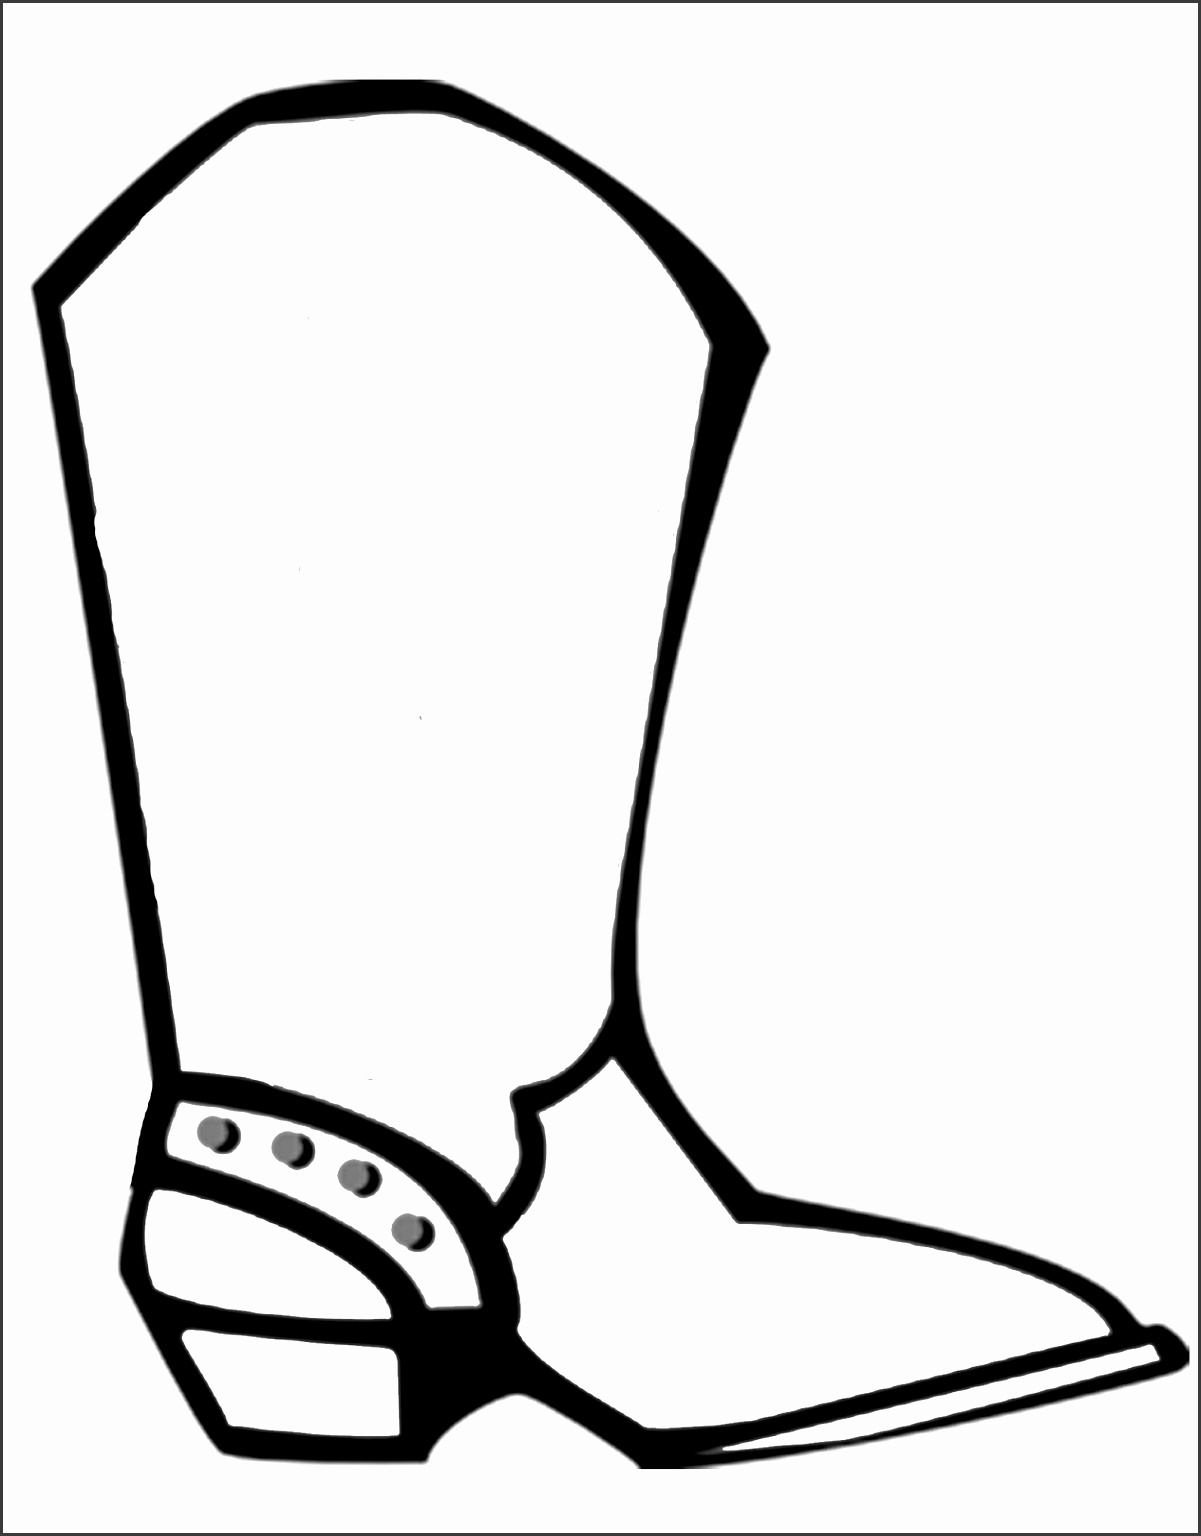 Cowboy Boots Drawingthe Quandong Tree Kids Birthday Party Theme Western The Details Uaqqt